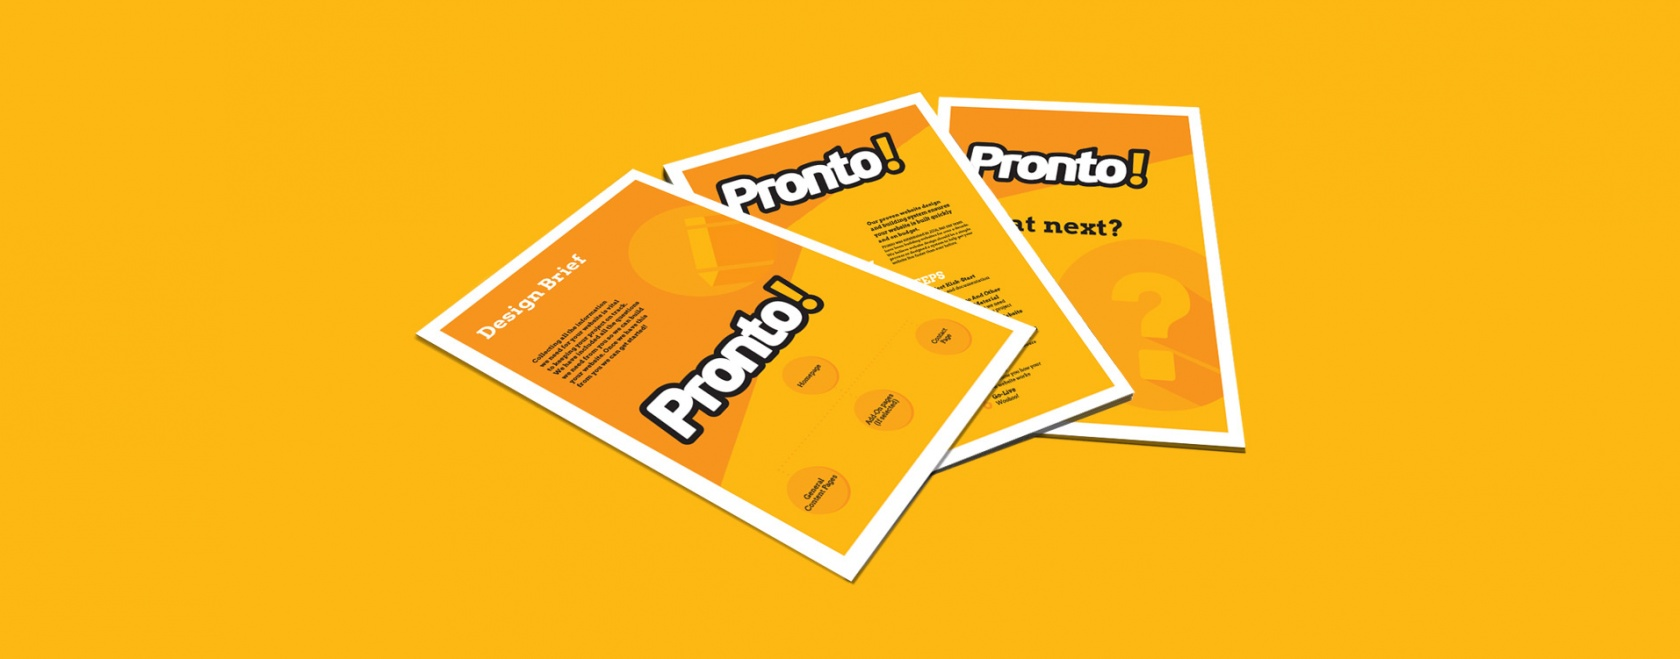 project-pronto-doc-covers